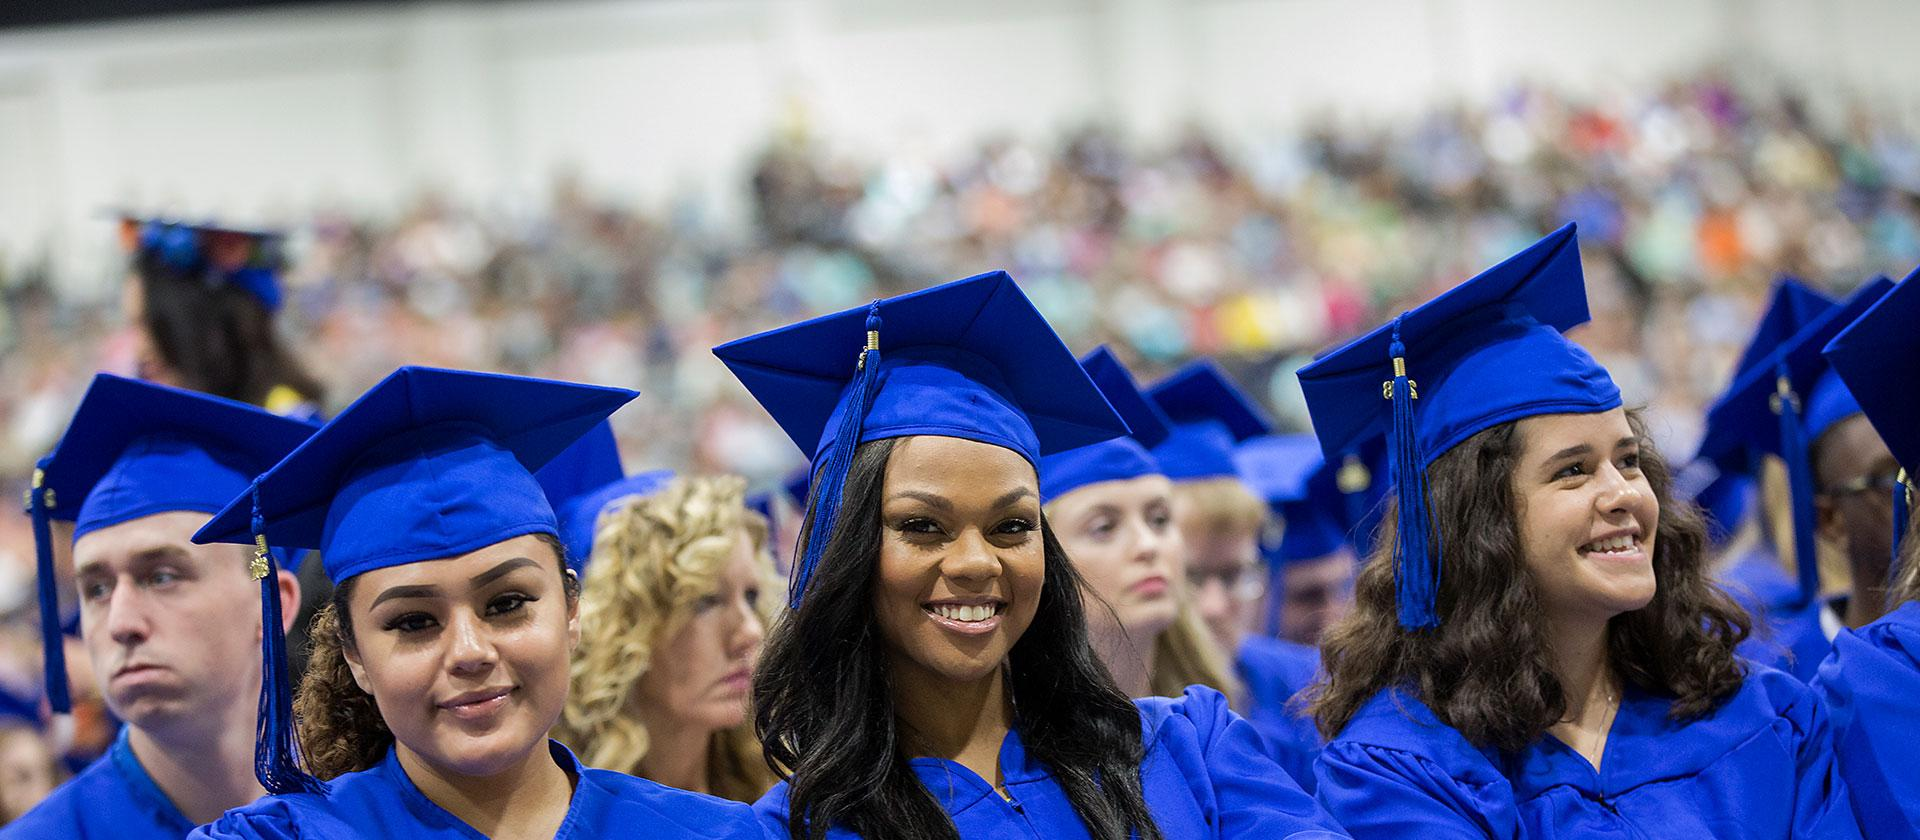 April is Community College Month and an opportune time to reflect on our community and technical colleges and the impact they have on our local communities.